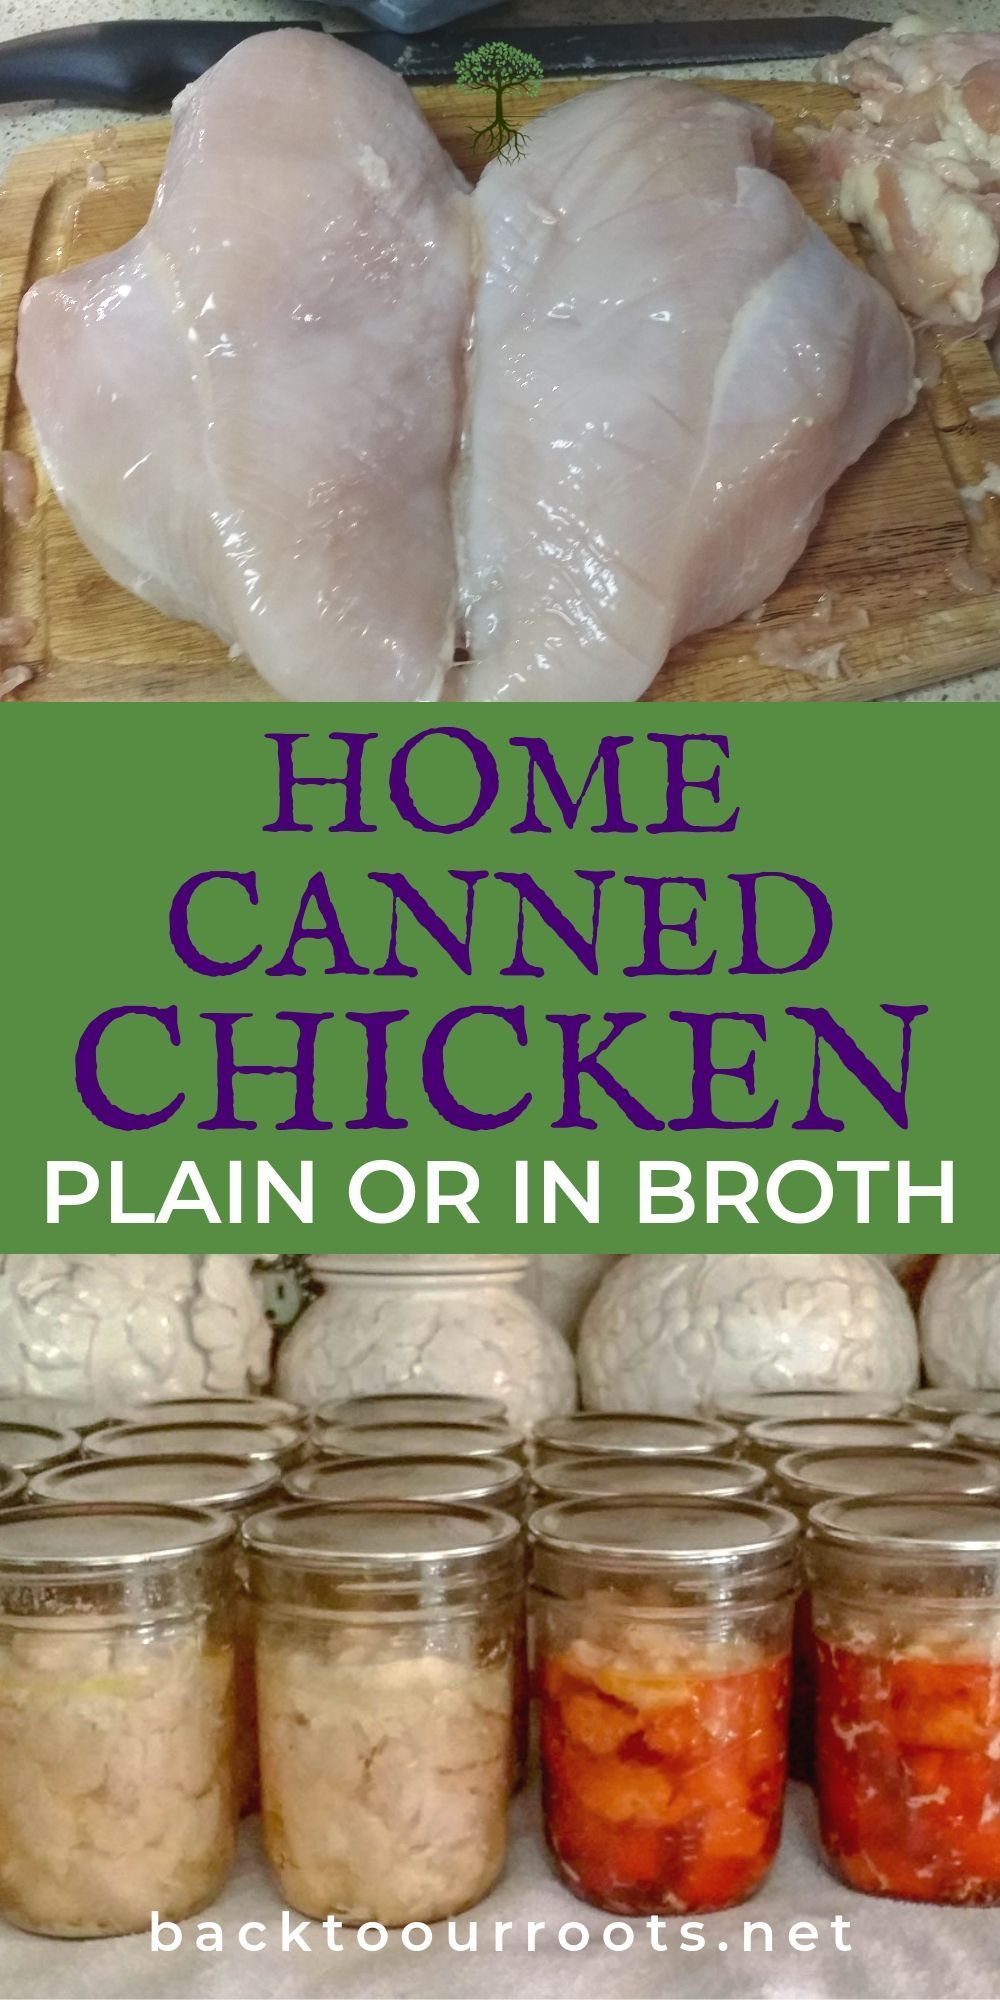 How to pressure can chicken at home easily and safely